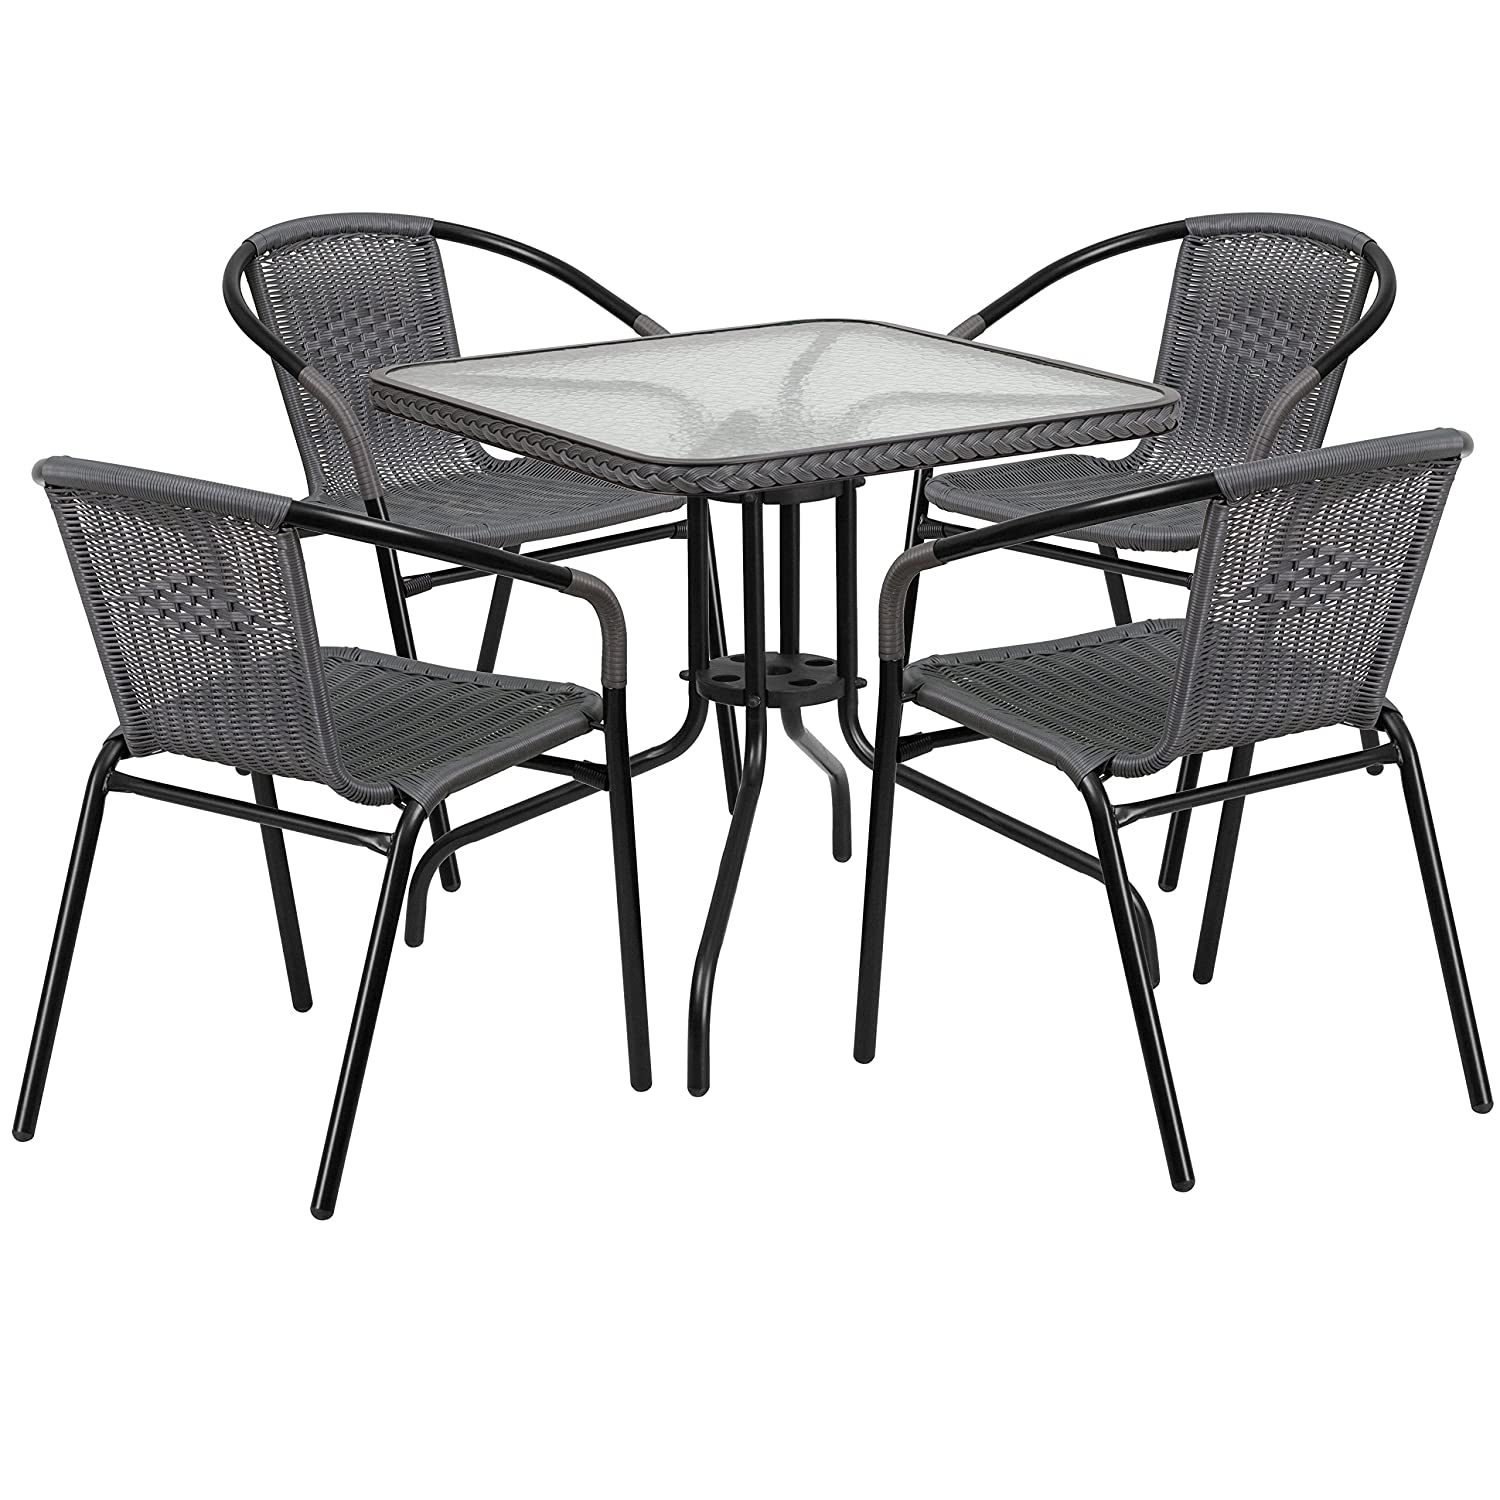 38d11d24f3 Amazon.com - Flash Furniture 28'' Square Glass Metal Table with Black  Rattan Edging and 4 Black Rattan Stack Chairs - Table & Chair Sets